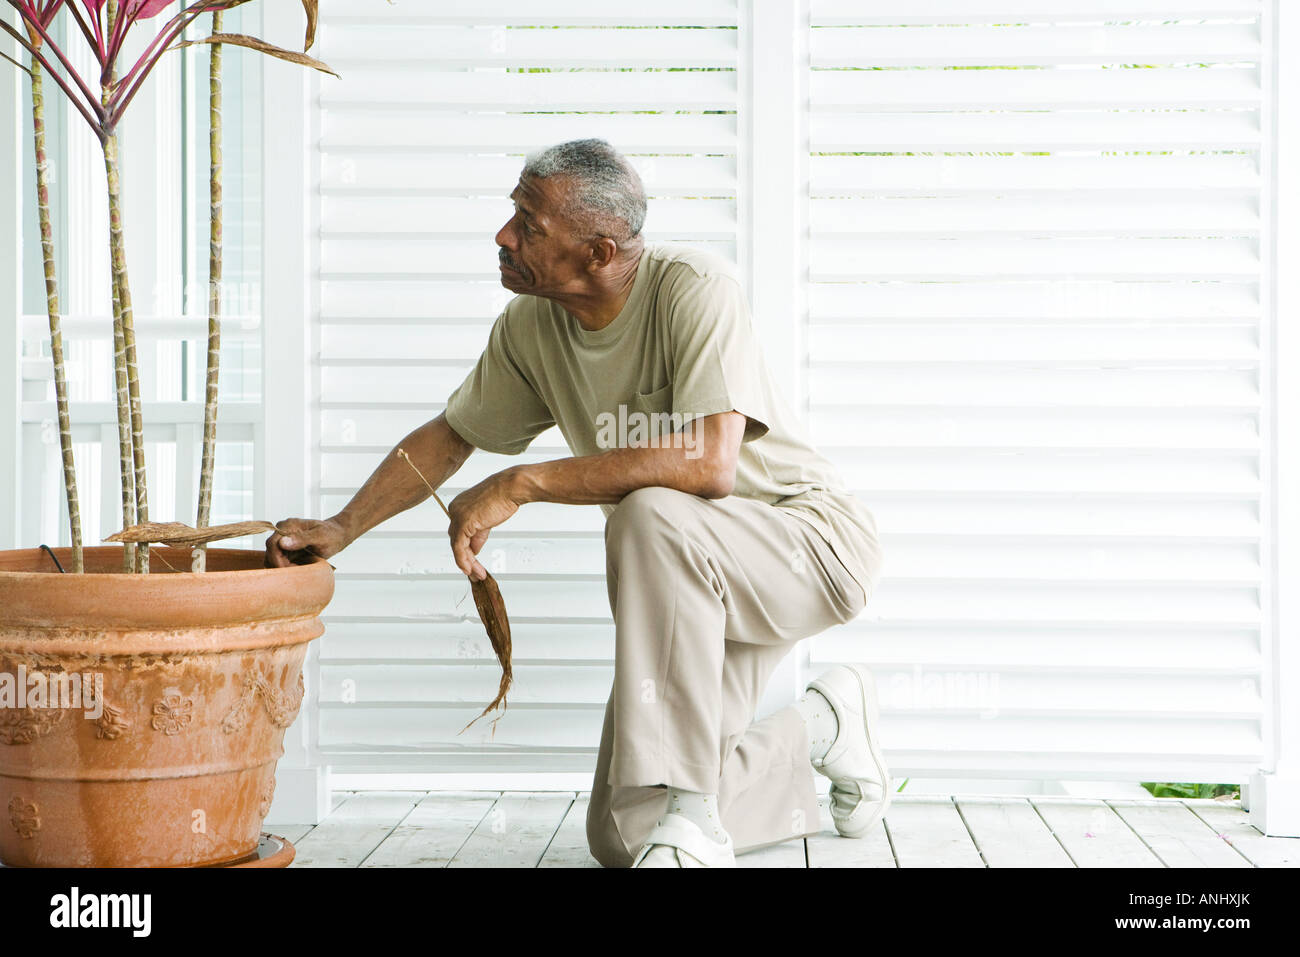 Man kneeling next to potted plant, holding dried leaves in hands - Stock Image